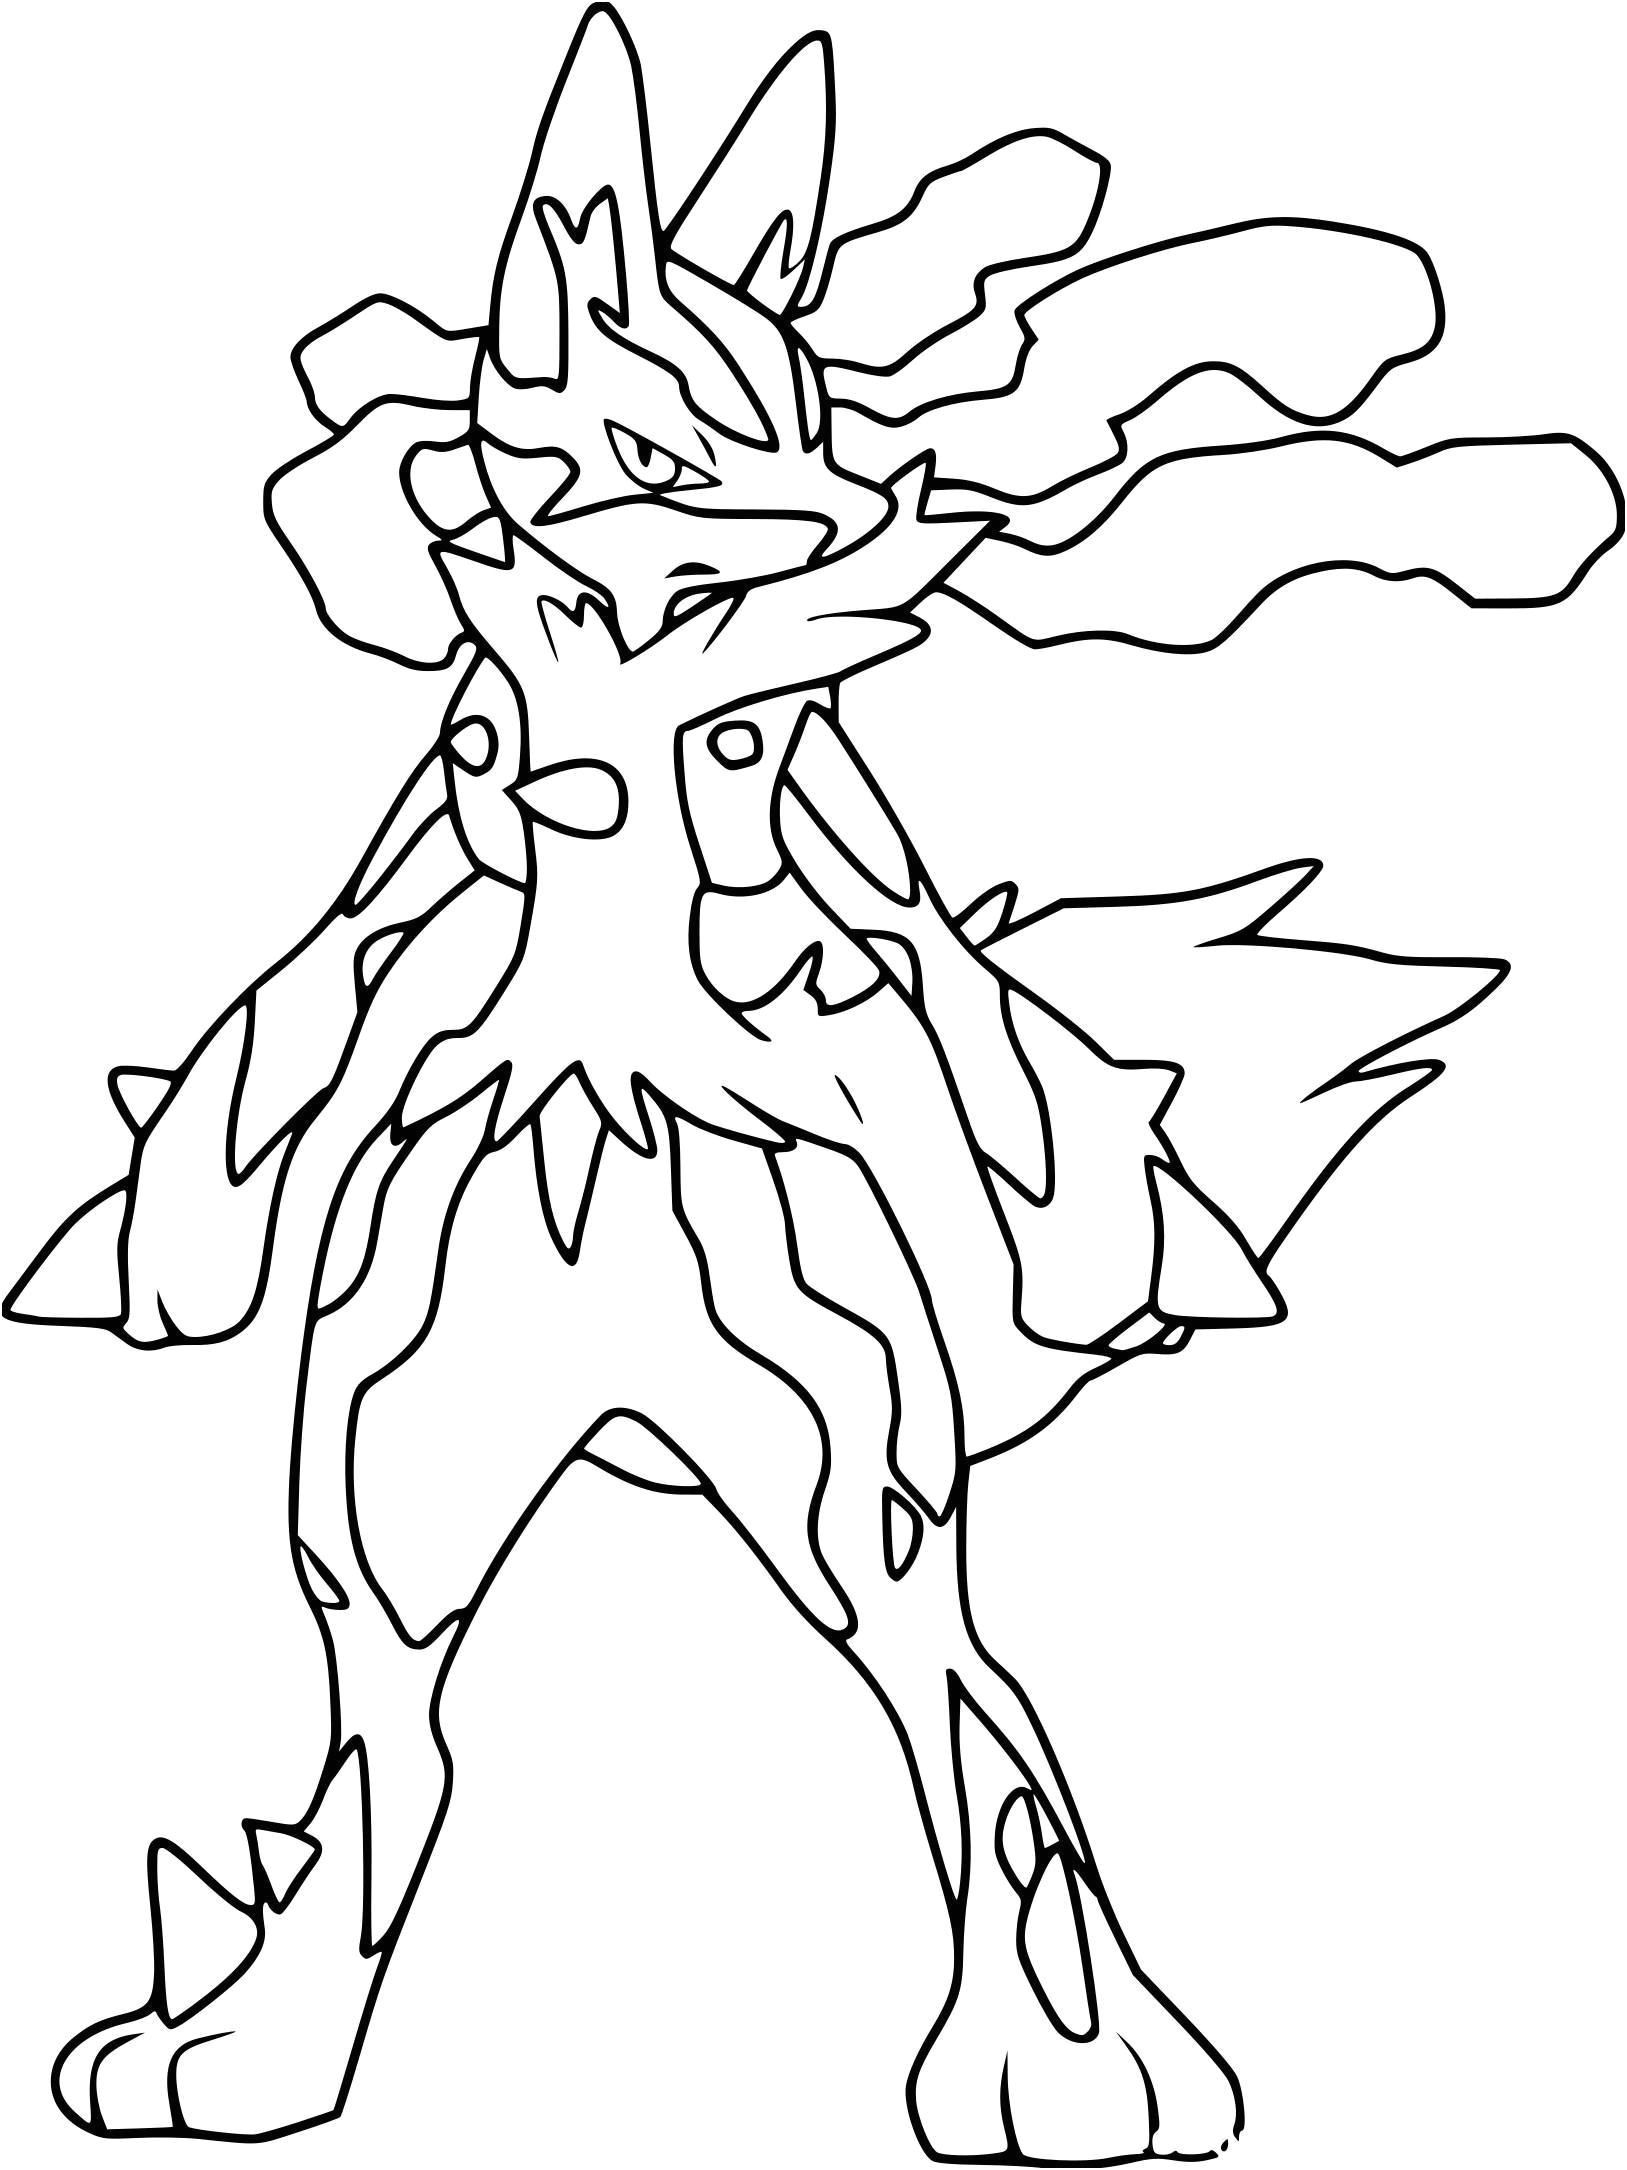 9 Majestic Pokemon Coloriage Gallery Coloriage Pokemon Coloriage Pokemon Legendaire Coloriage